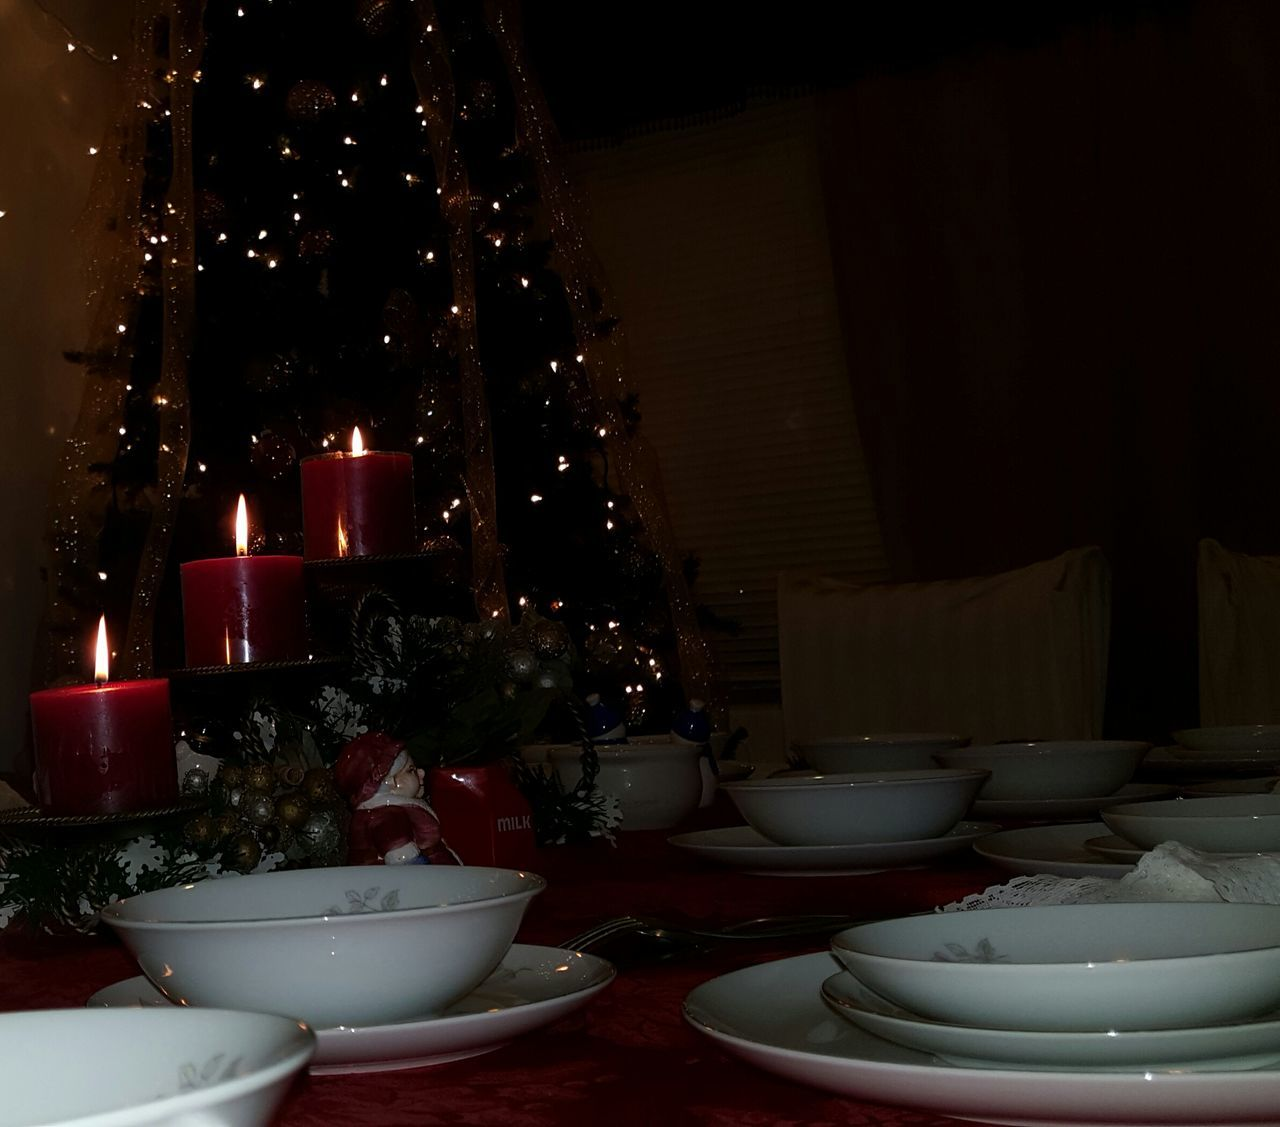 indoors, food and drink, no people, plate, table, bowl, illuminated, food, close-up, day